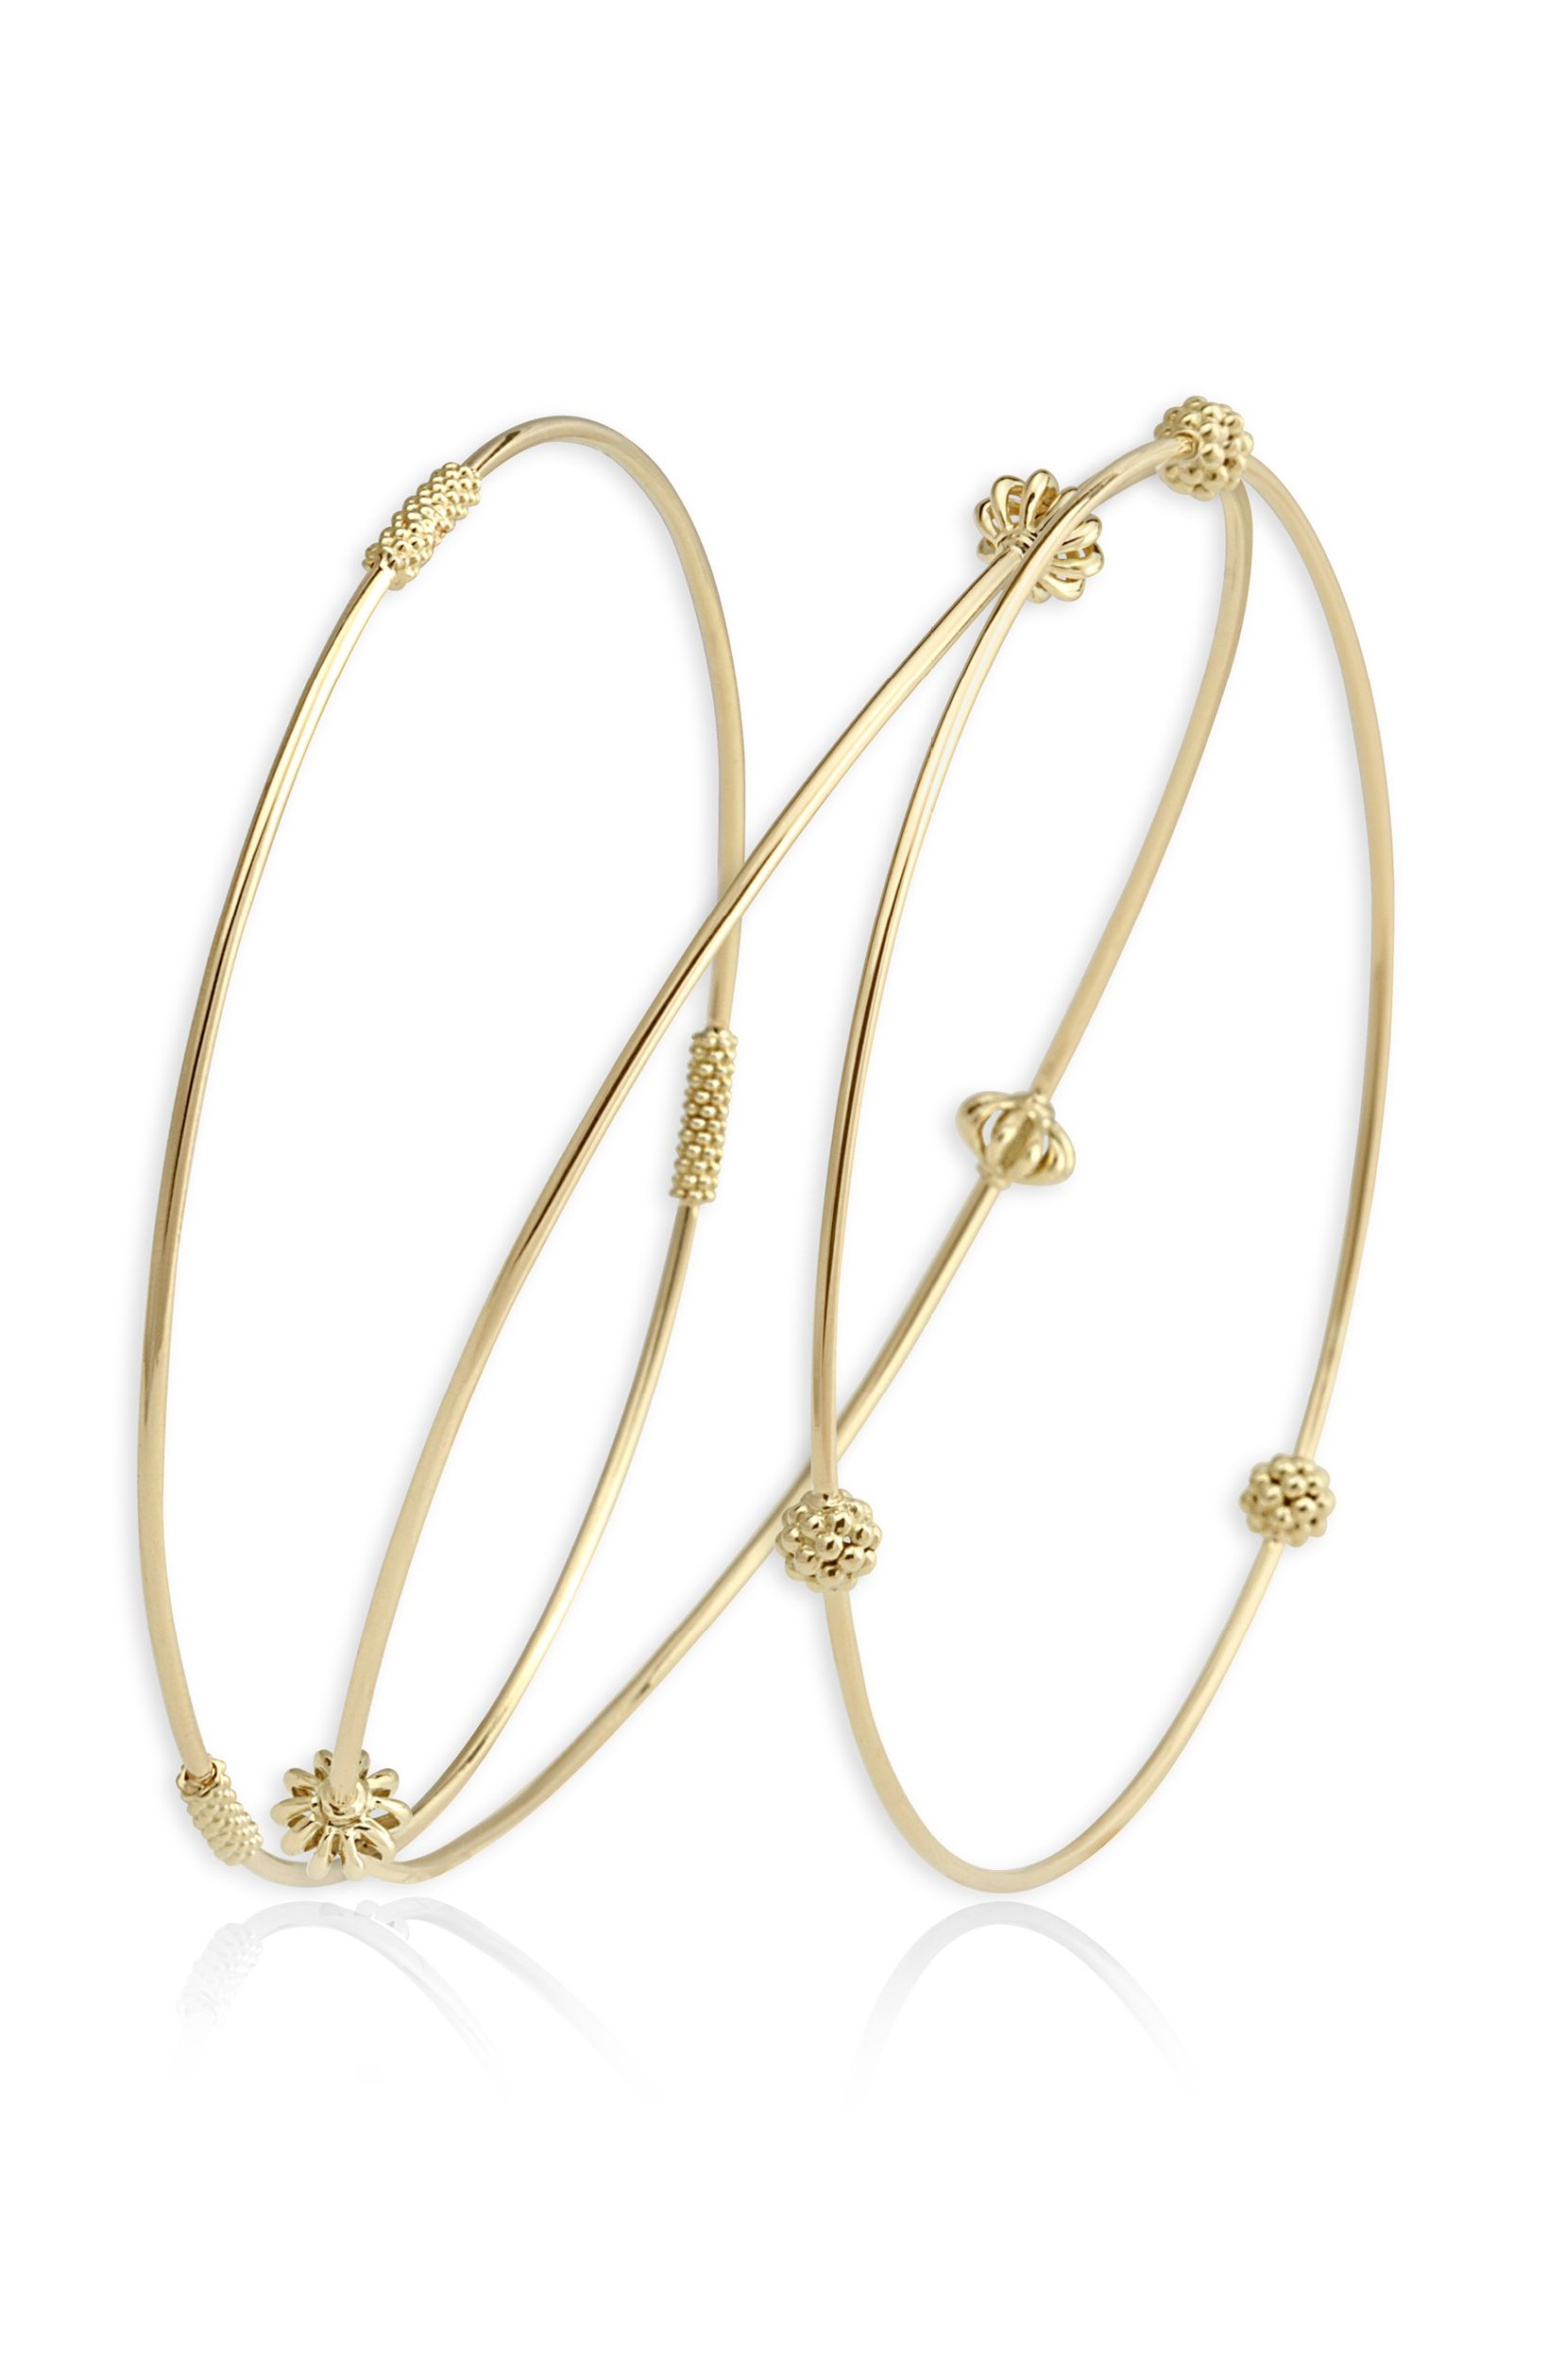 mirror set gold pin bangles white jewelry